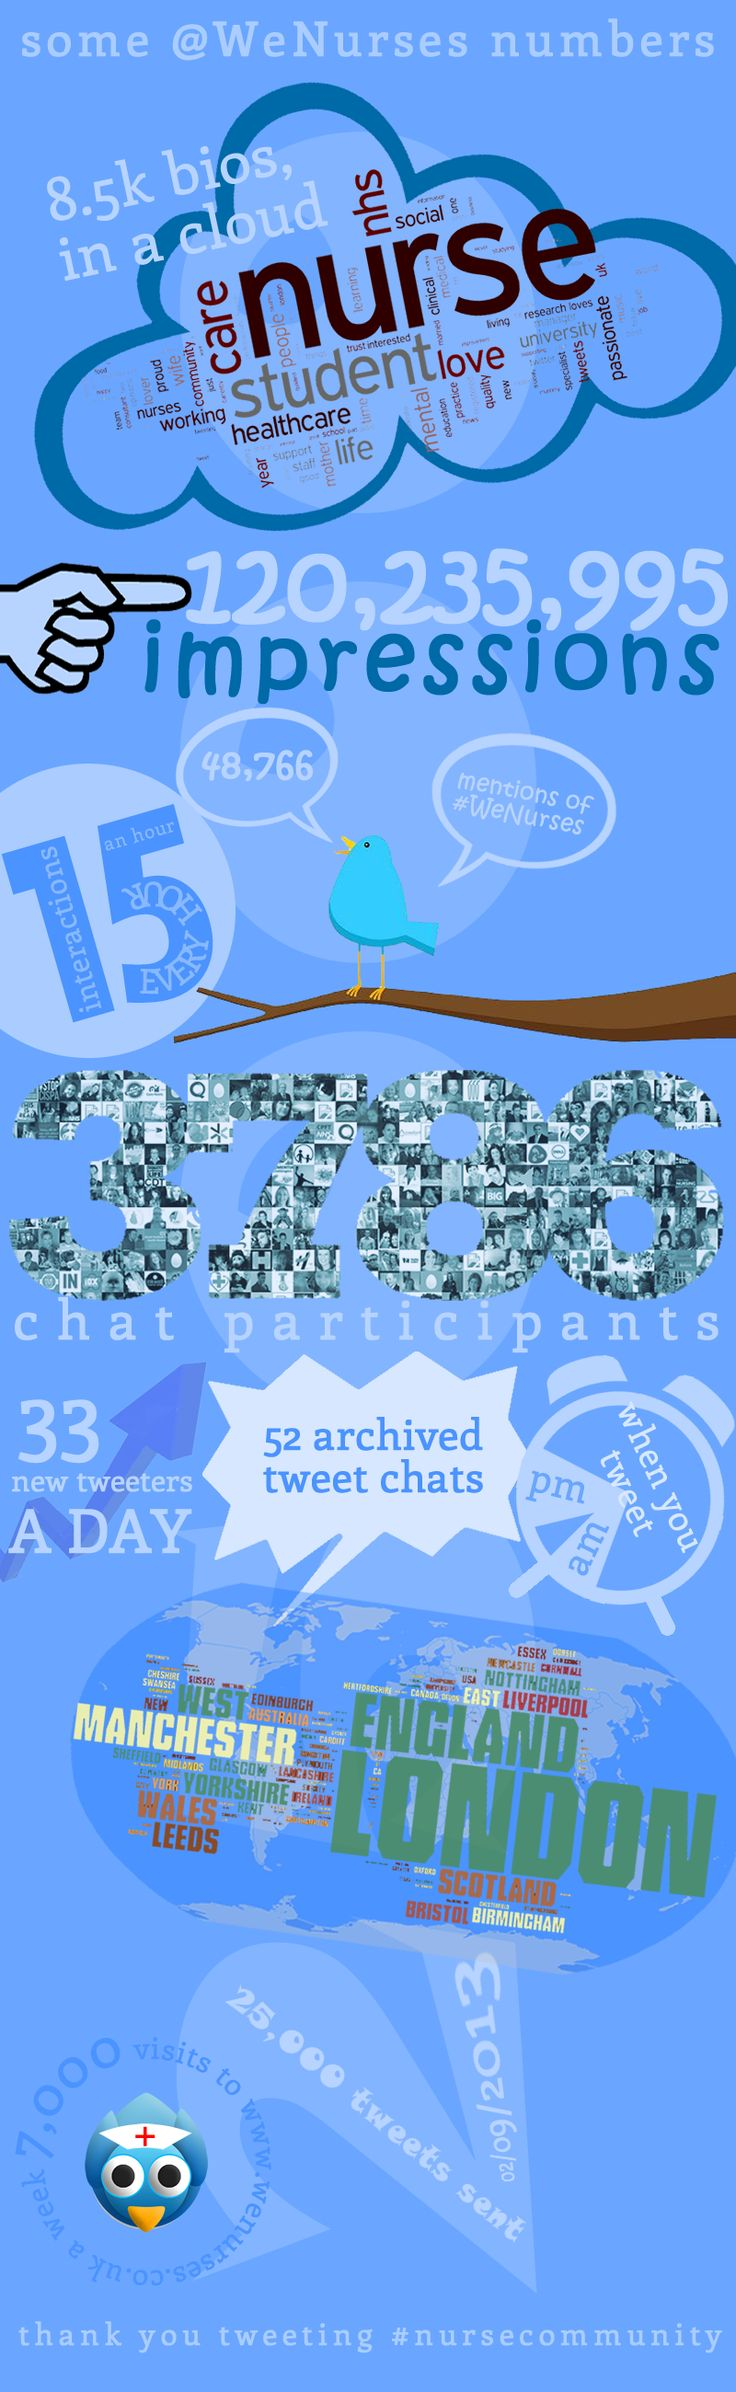 today @WeNurses sent out its 25,000th tweet, so we thought we would share some other numbers to see what else has happen whilst we were tweeting 25,000 tweets to you!